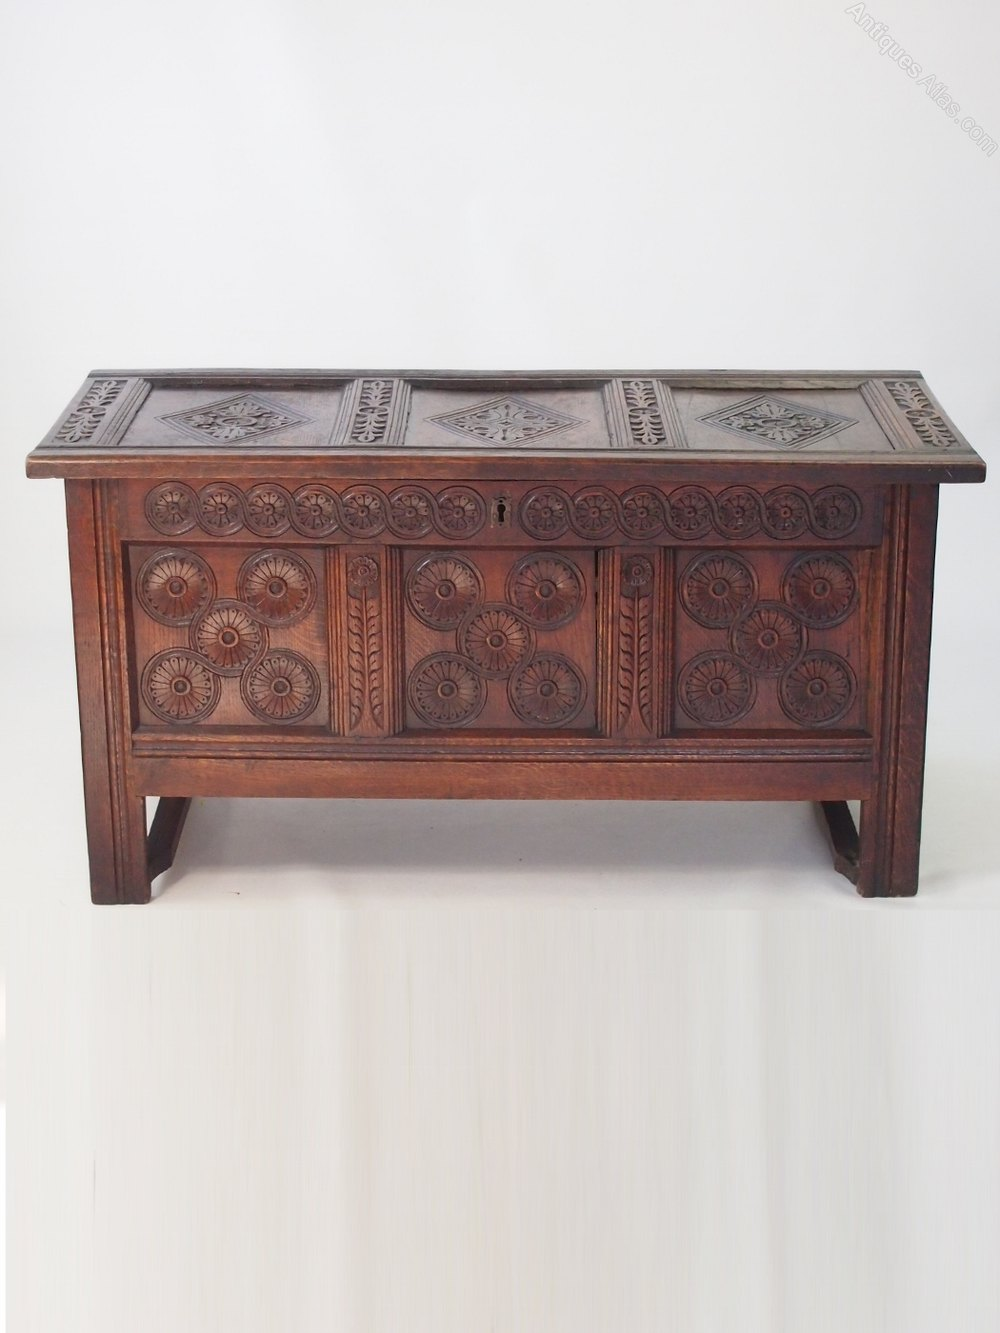 William mary carved oak coffer circa 1690 antiques atlas for Vintage furniture dealers